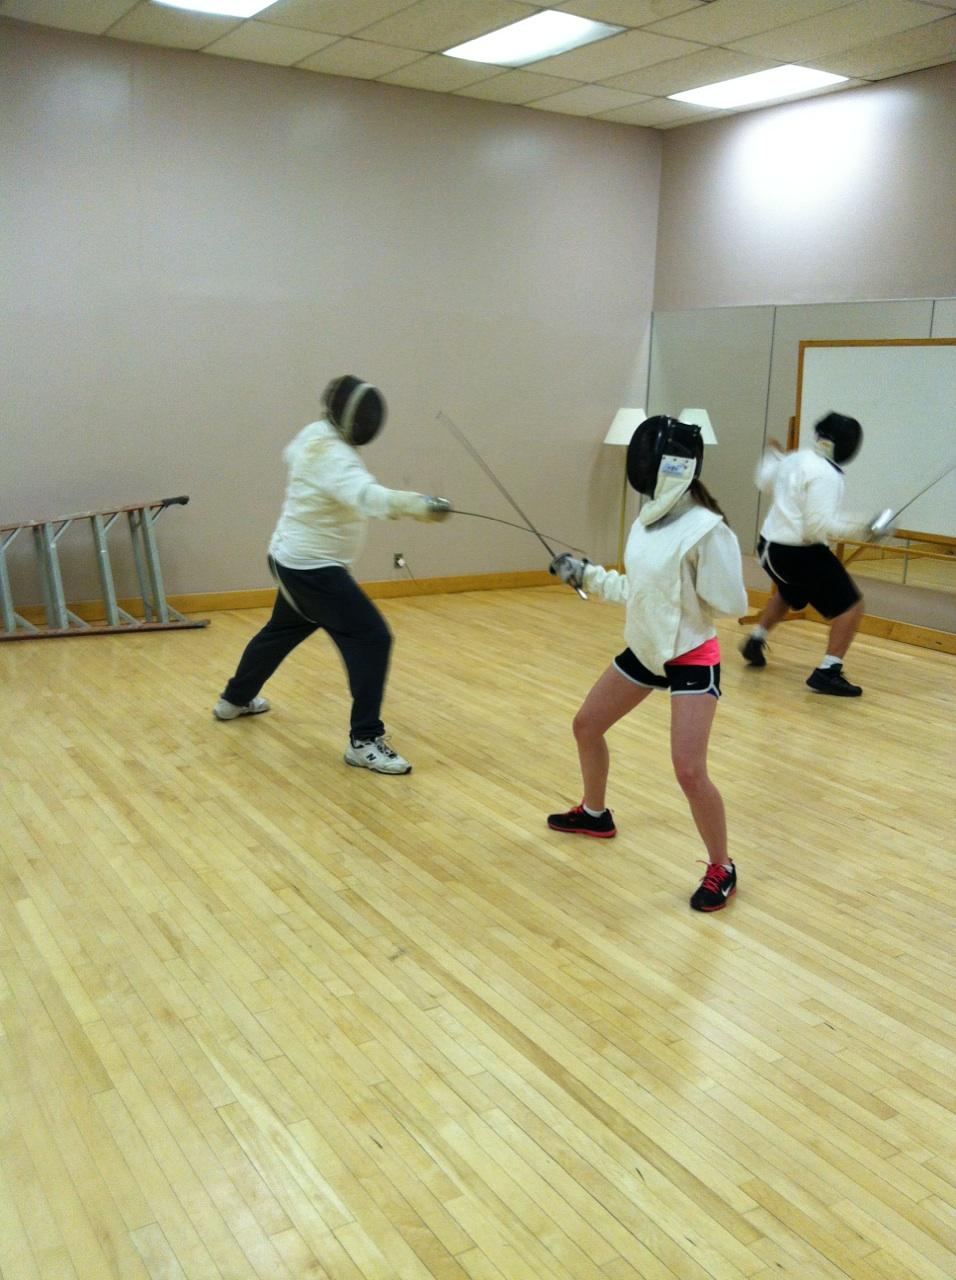 This is me fencing another student! (I am wearing the pink shirt under my vest)